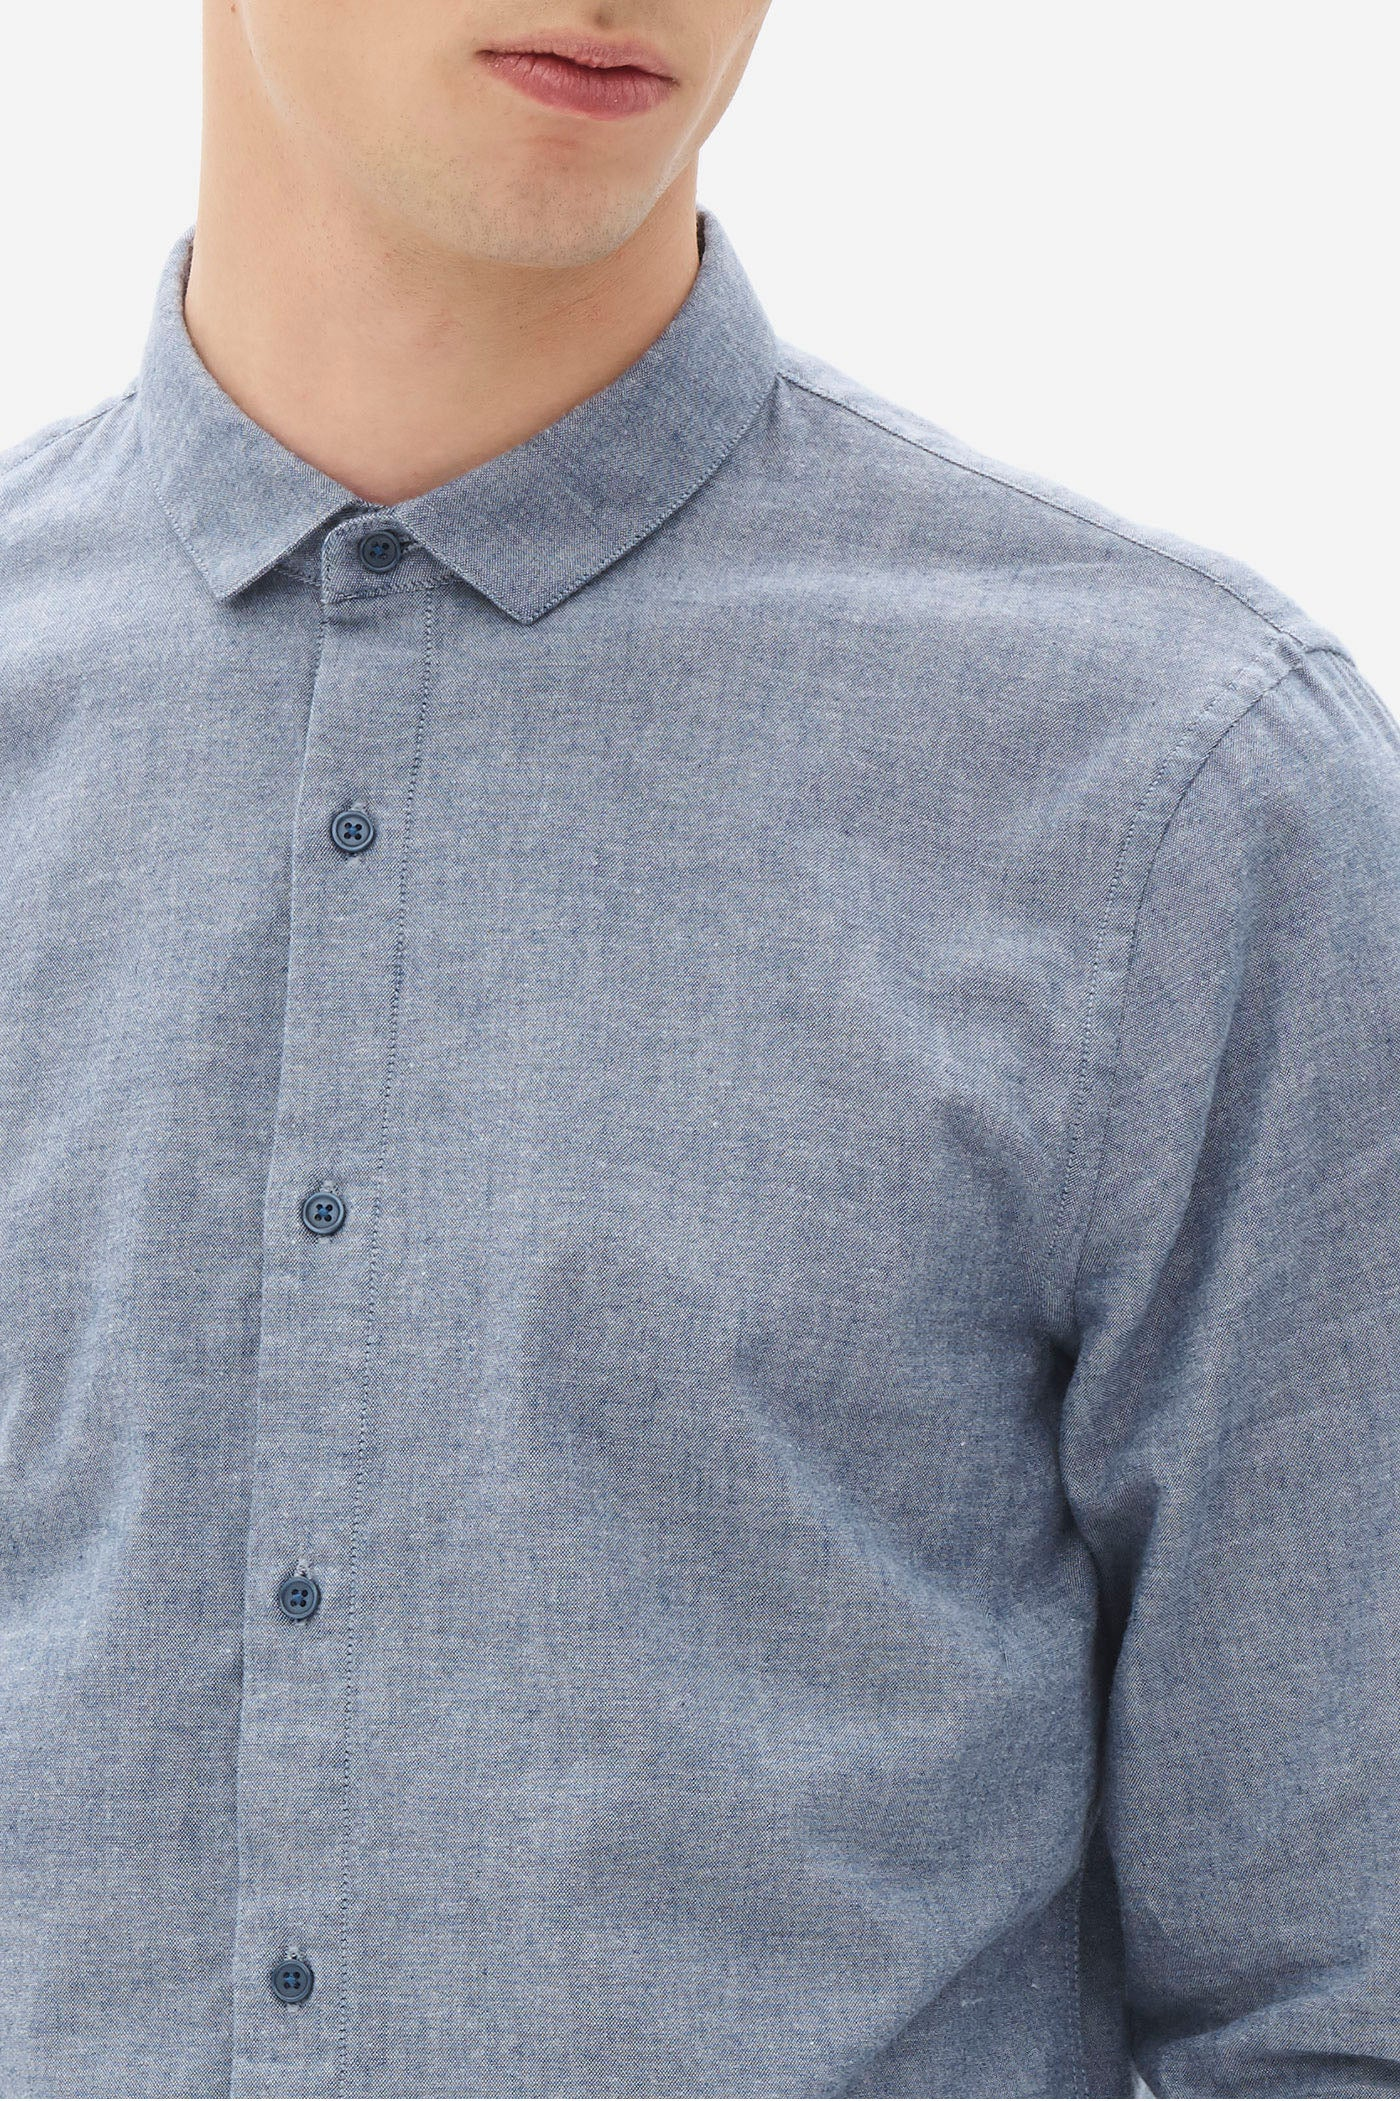 Brushed Oxford Shark Shirt